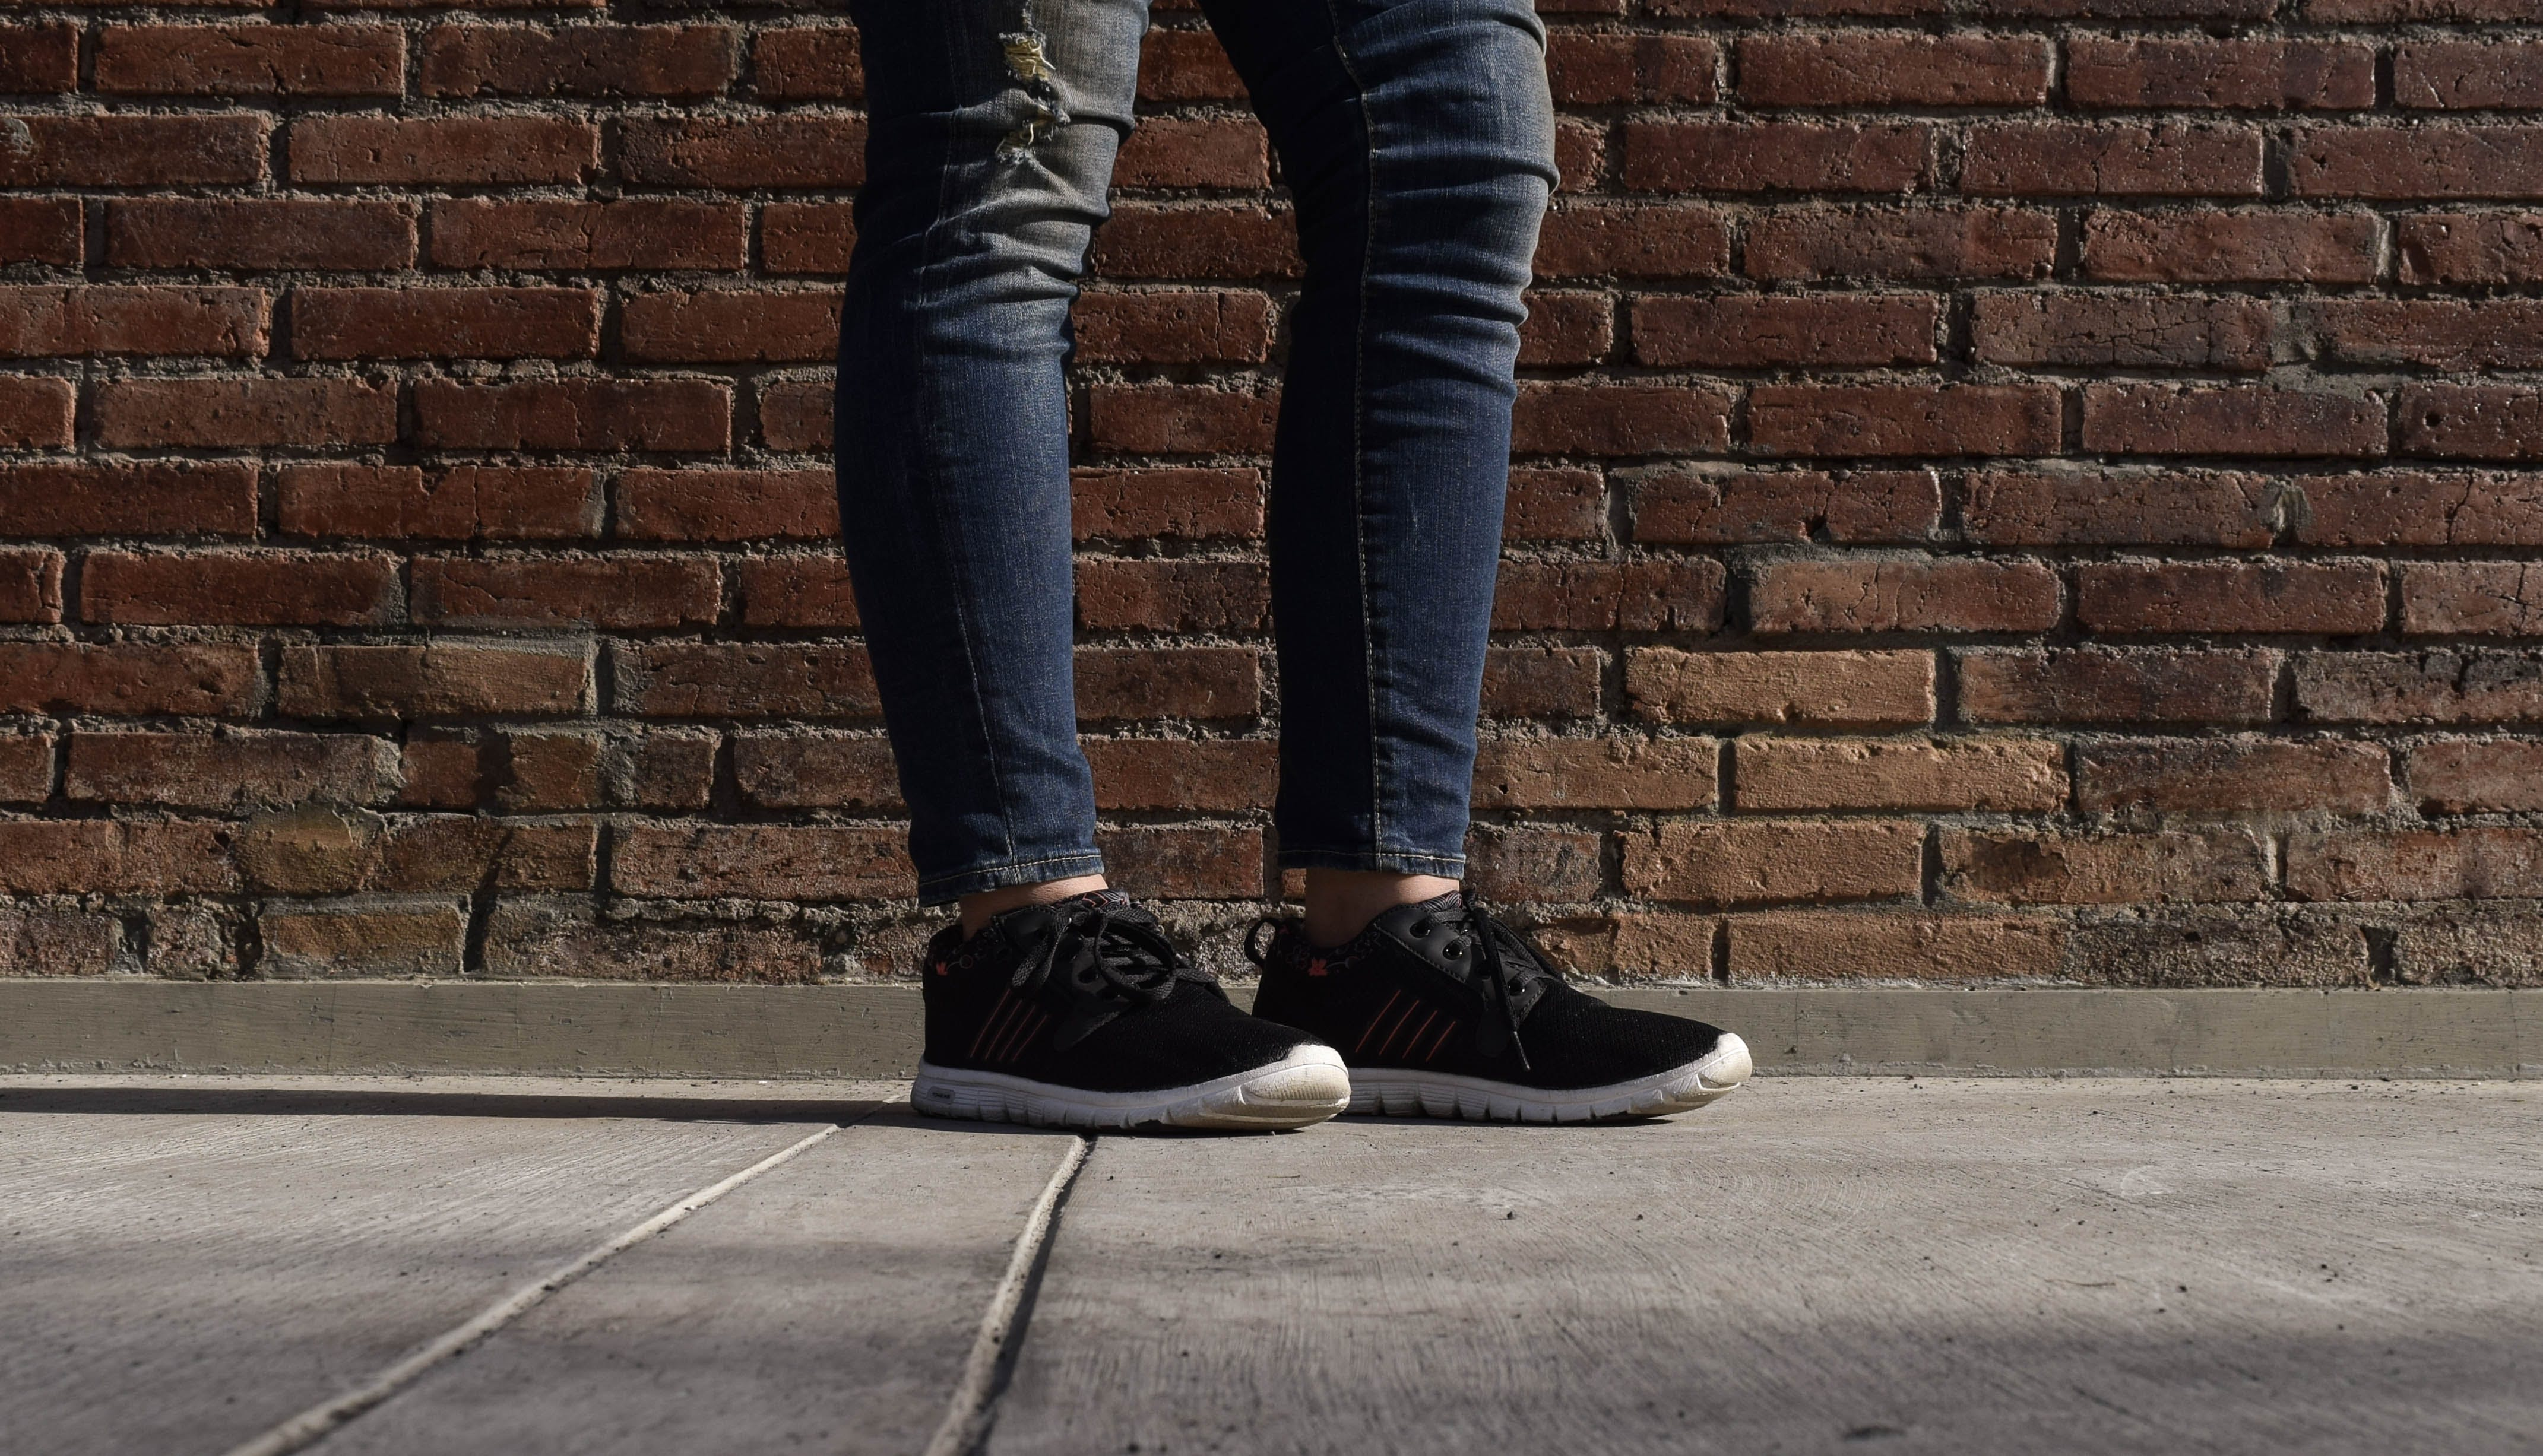 Free stock photo of #sneakers